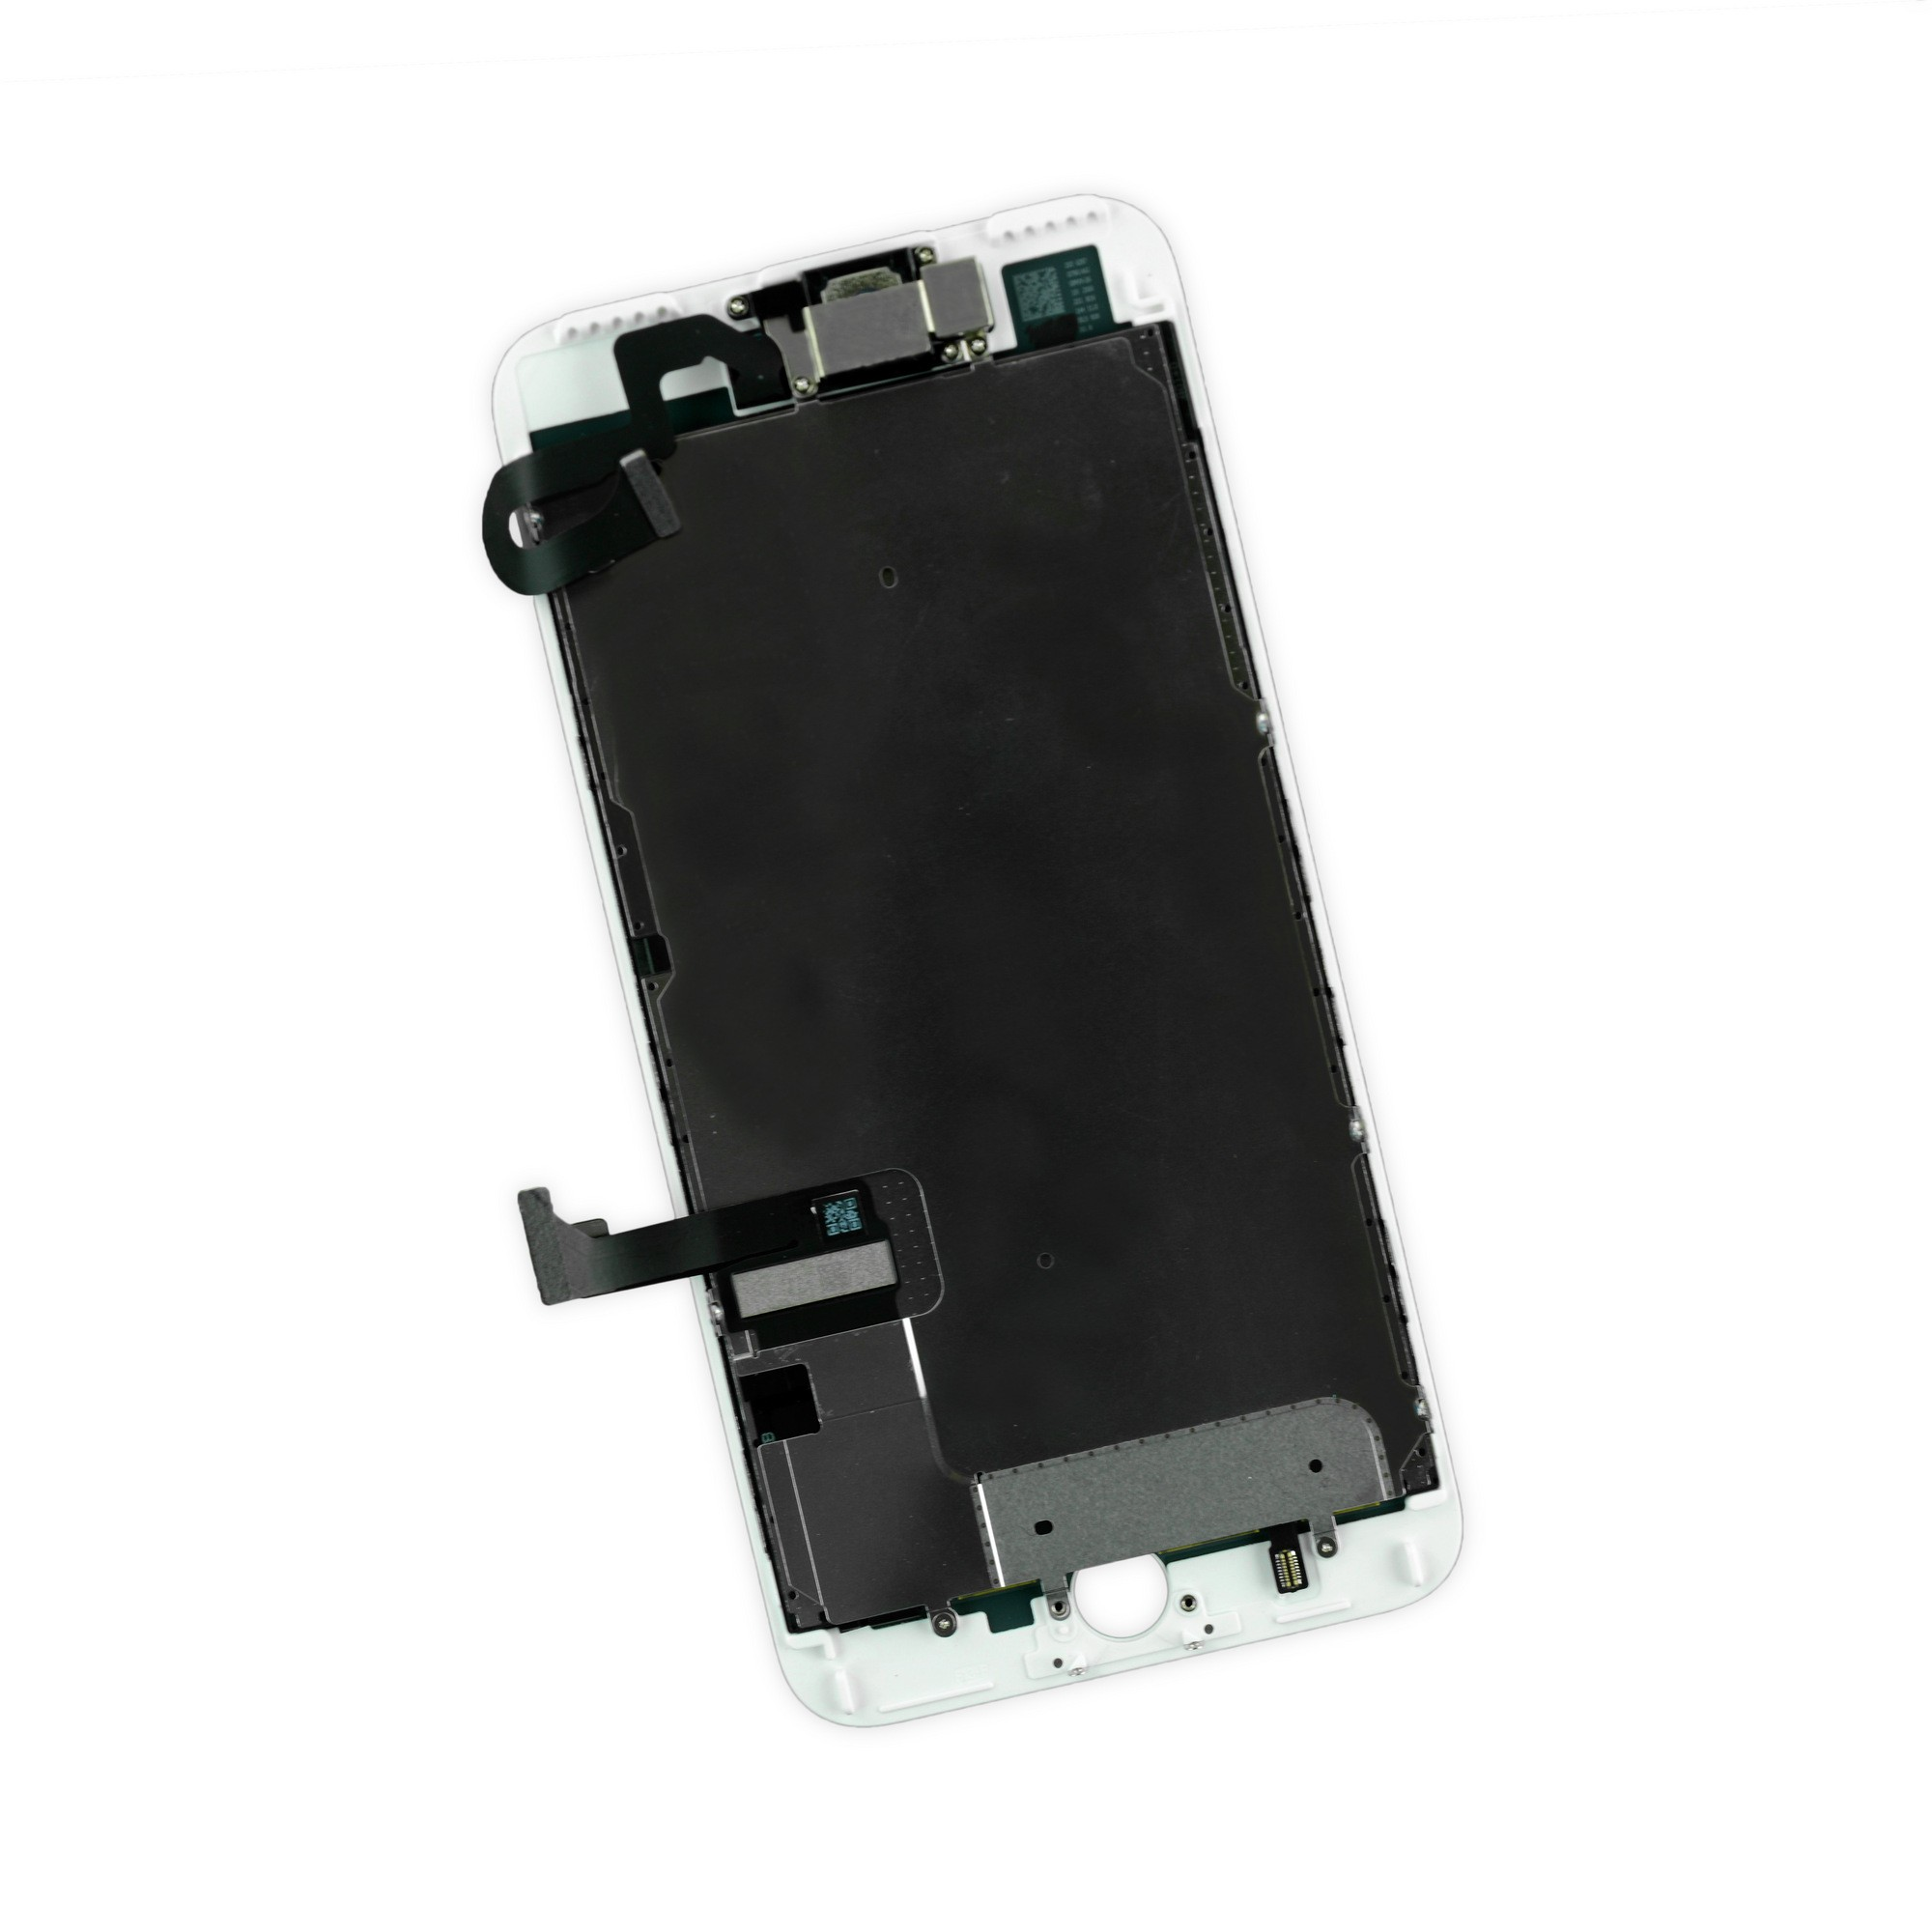 iPhone 7 Plus LCD Screen and Digitizer Full Assembly, New, Fix Kit - White, IF333-038-4